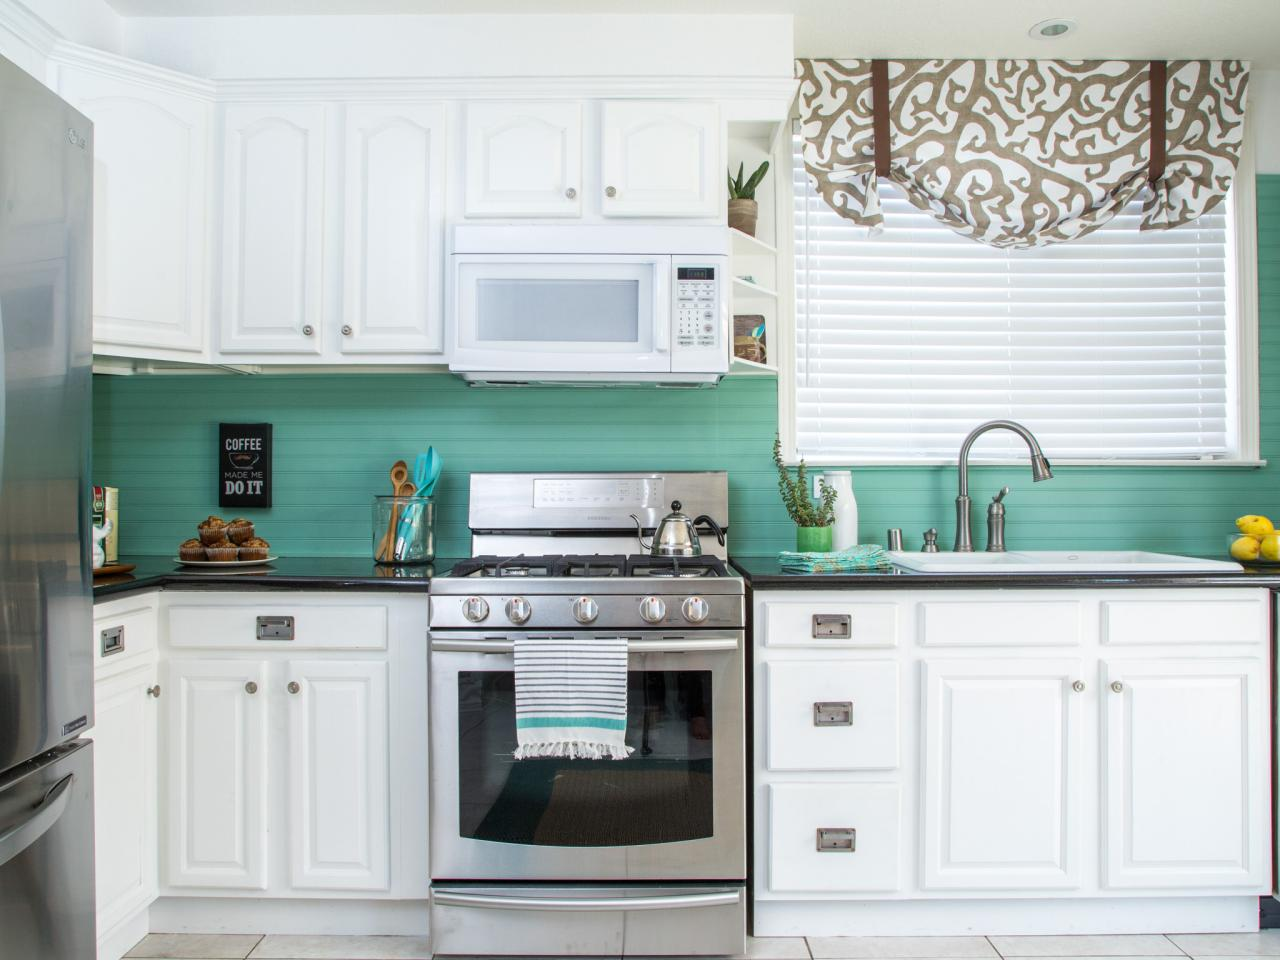 Kitchen Tile Pictures How To Cover An Old Tile Backsplash With Beadboard How Tos Diy